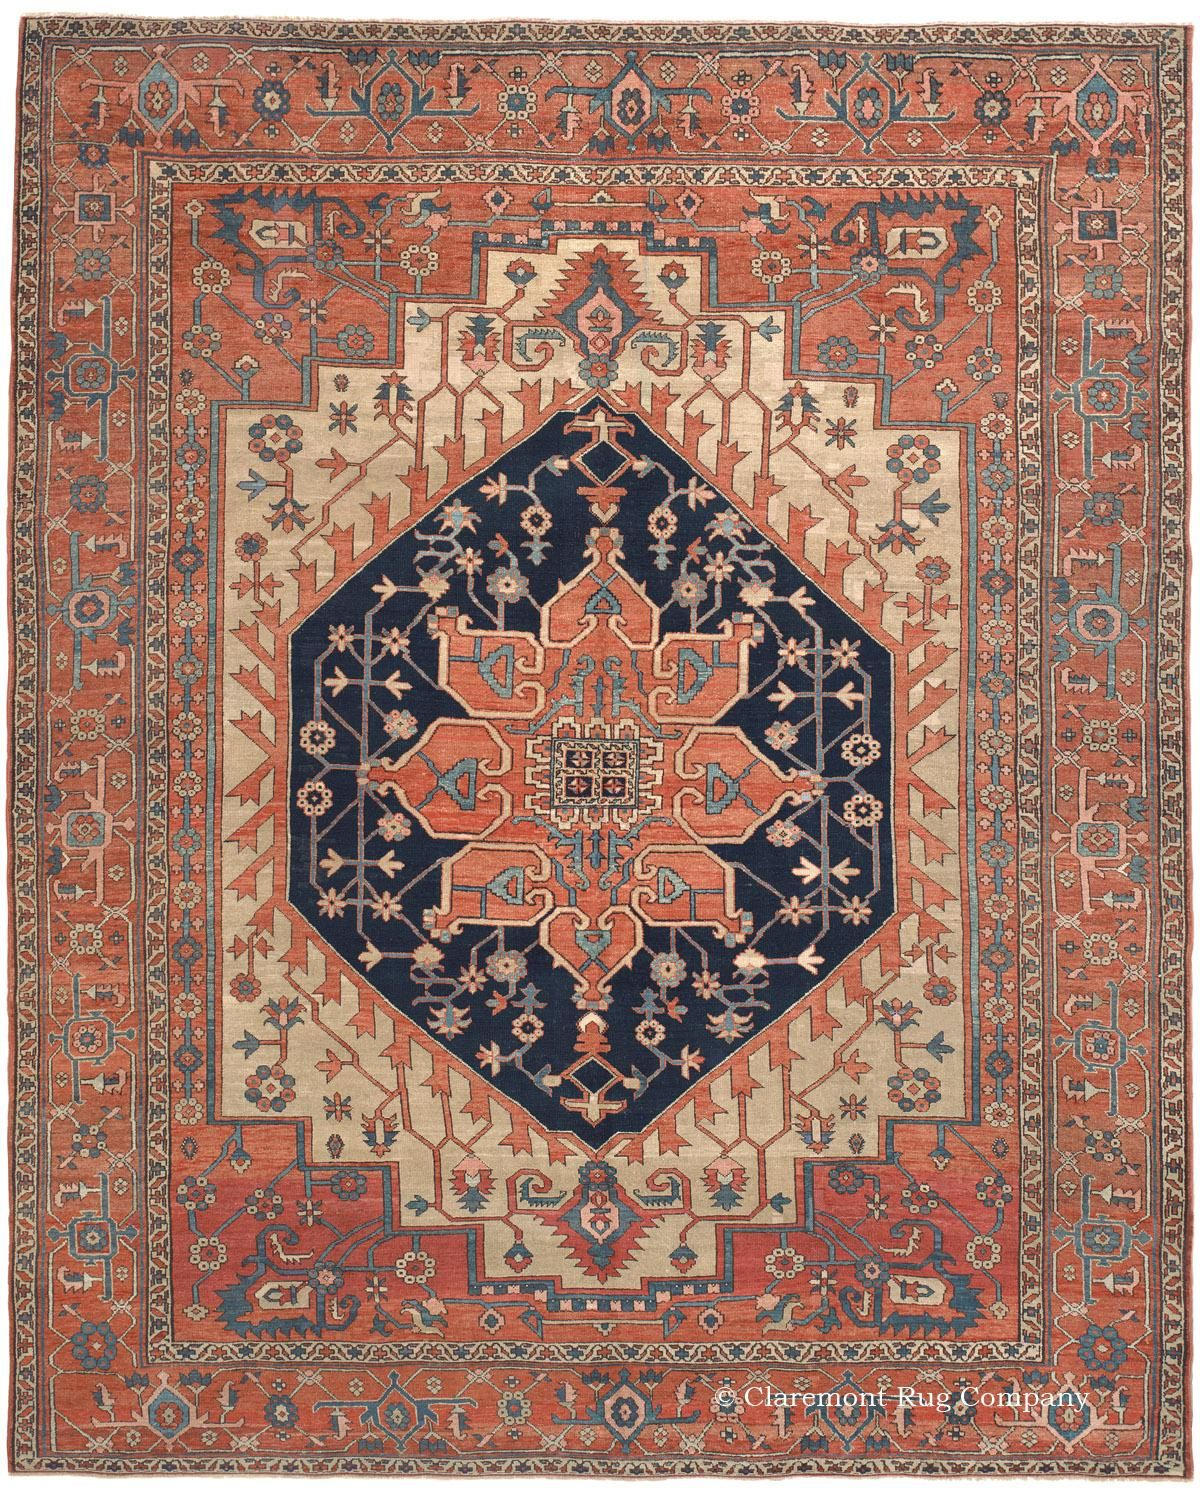 Serapi Northwest Persian 9ft 10in X 12ft 2in Circa 1875 Rugs Rugs On Carpet Persian Rug